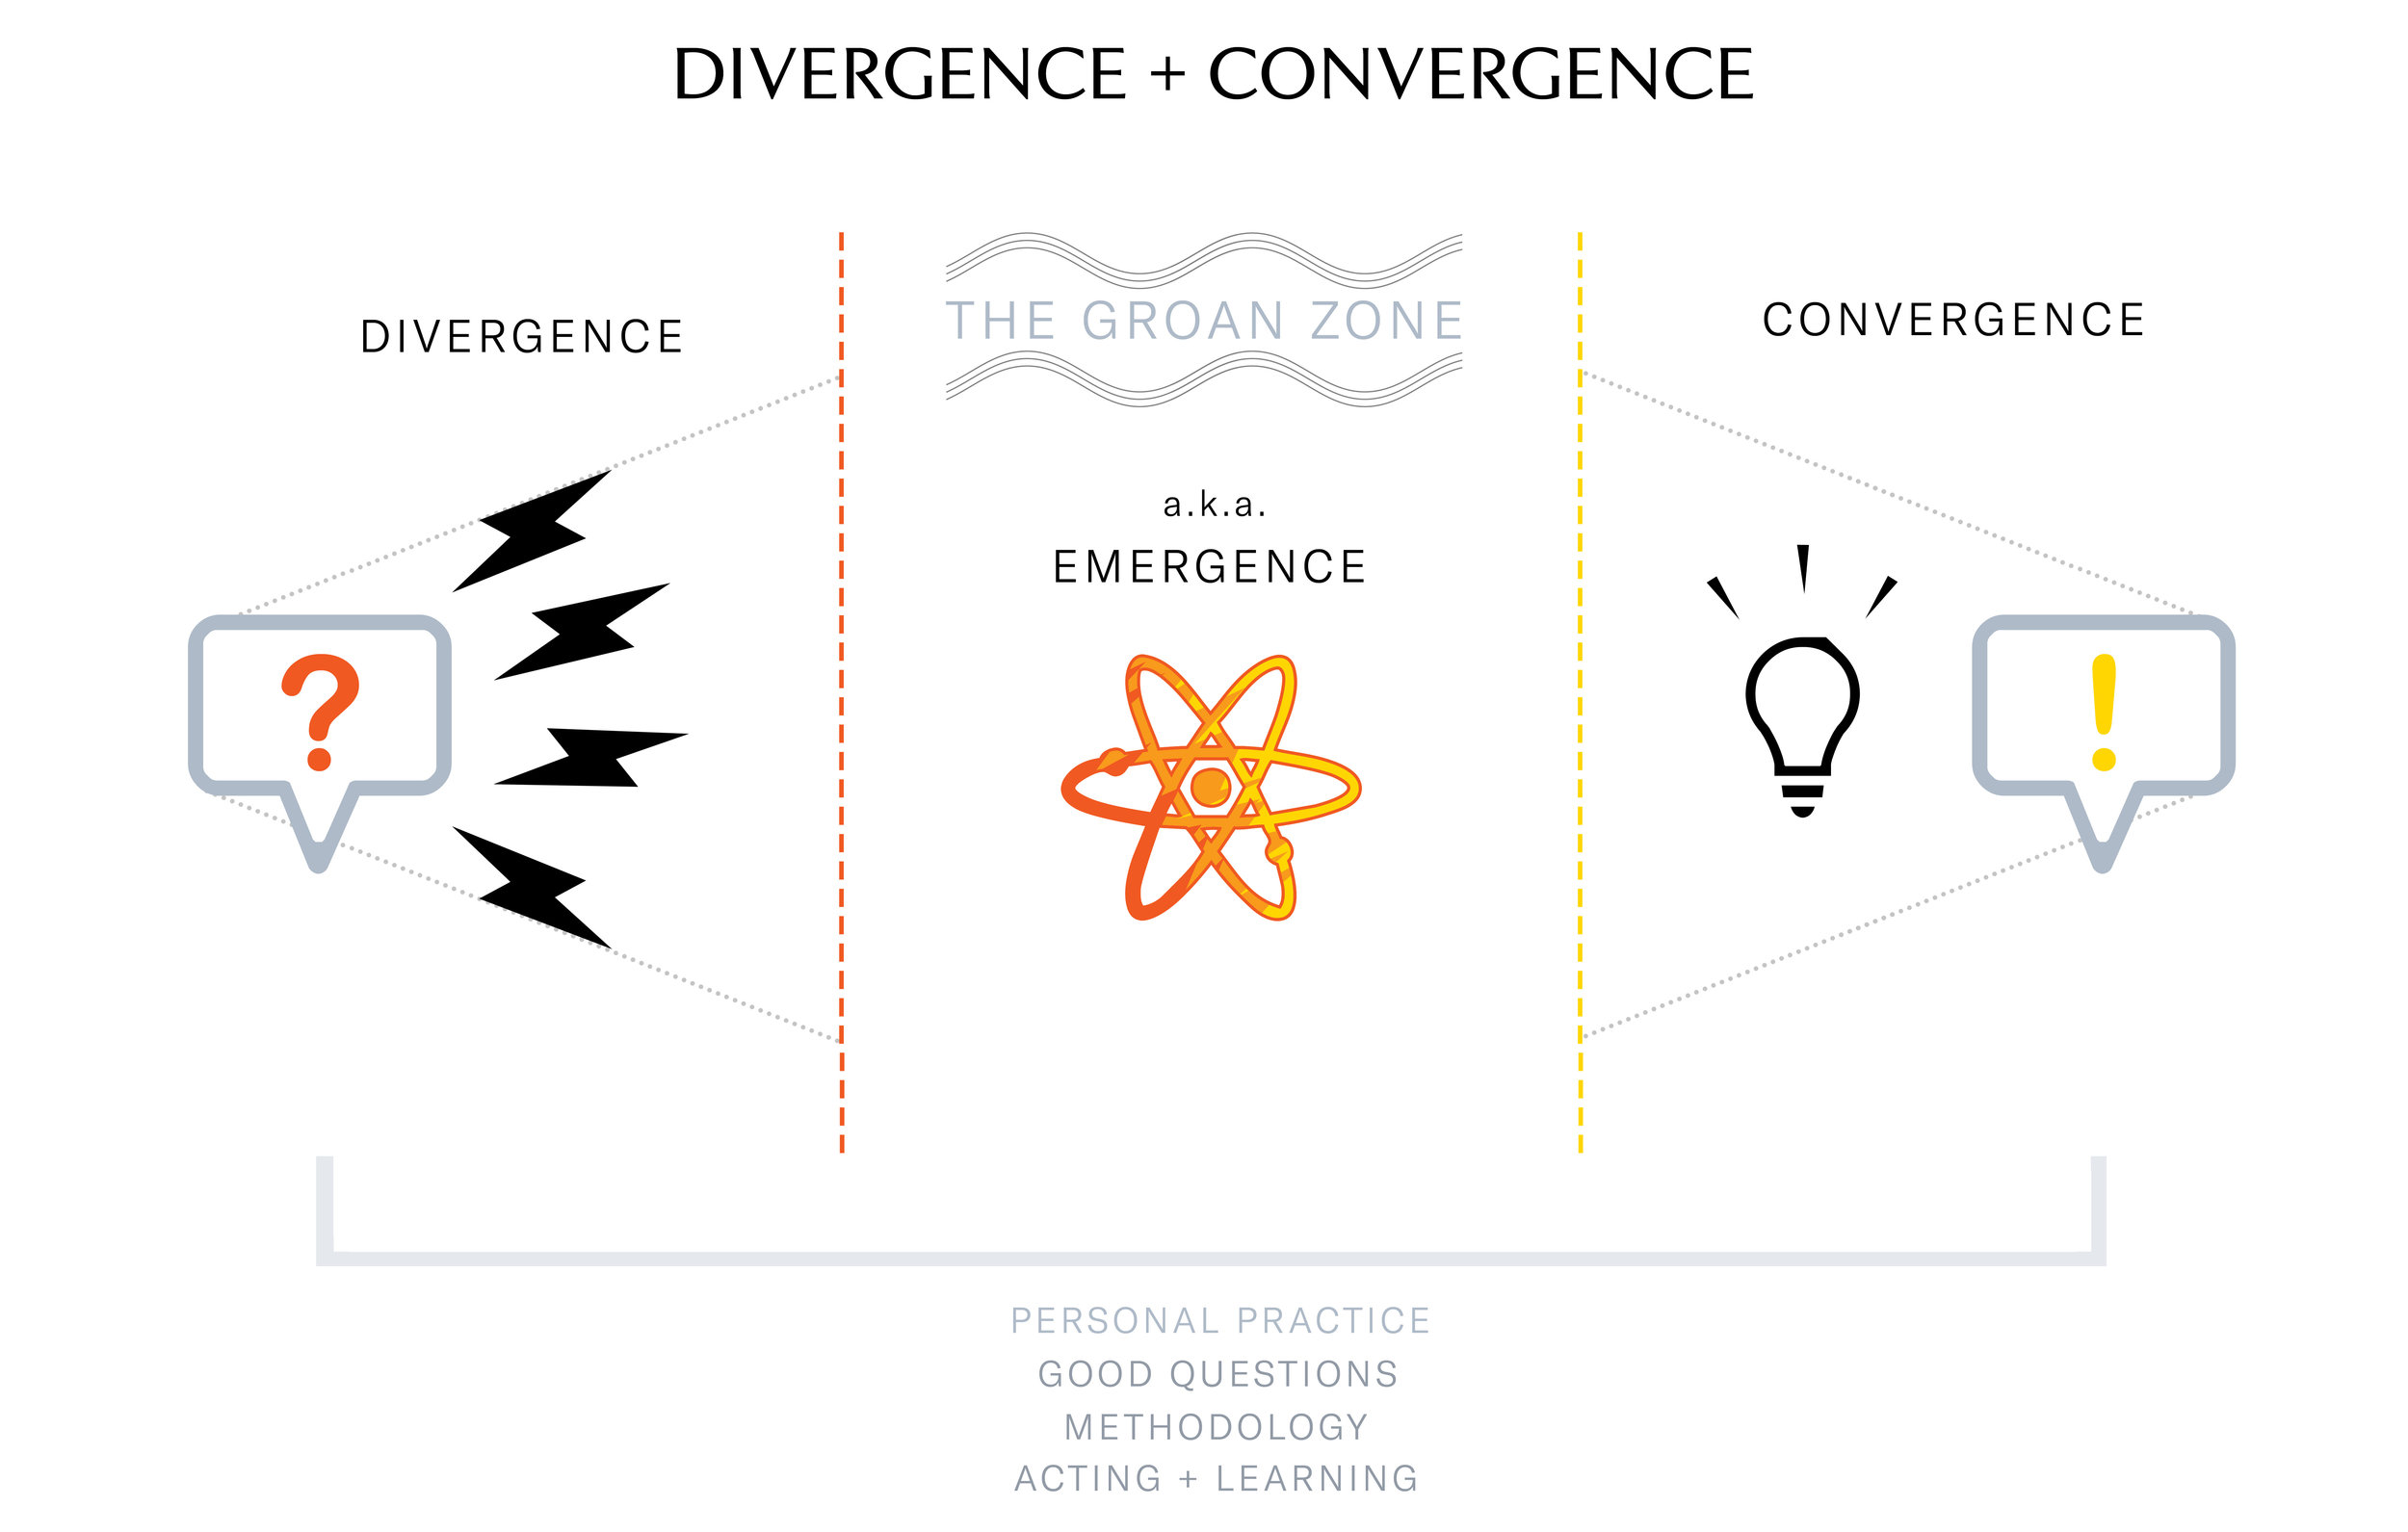 TO_Infographic_DIVERGENCE.jpg